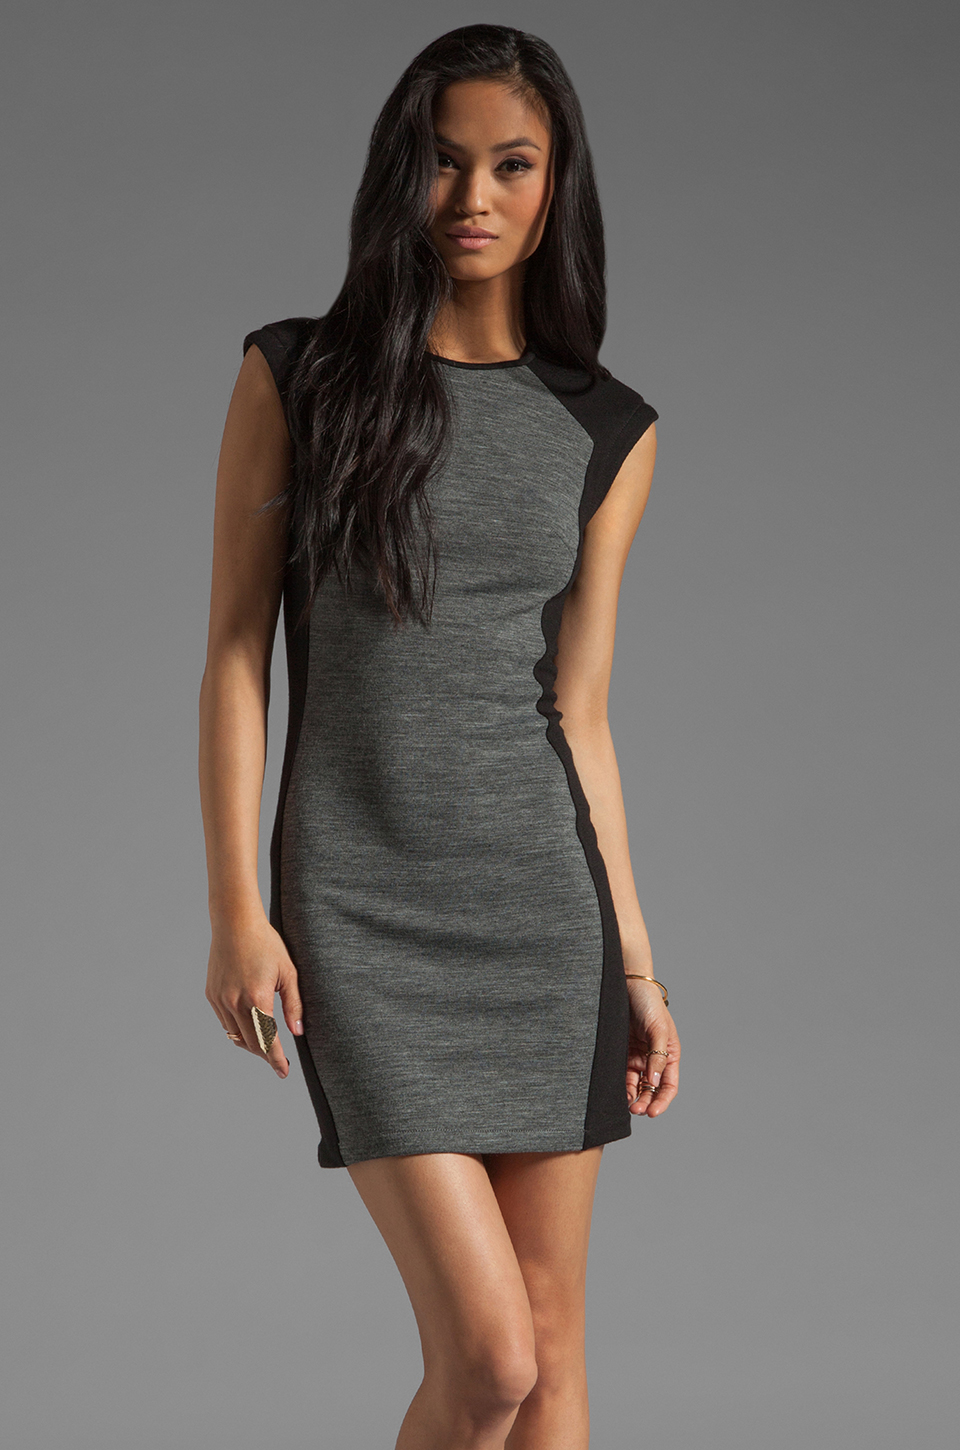 DEREK LAM 10 CROSBY Cap Sleeve Dress in Grey/Black